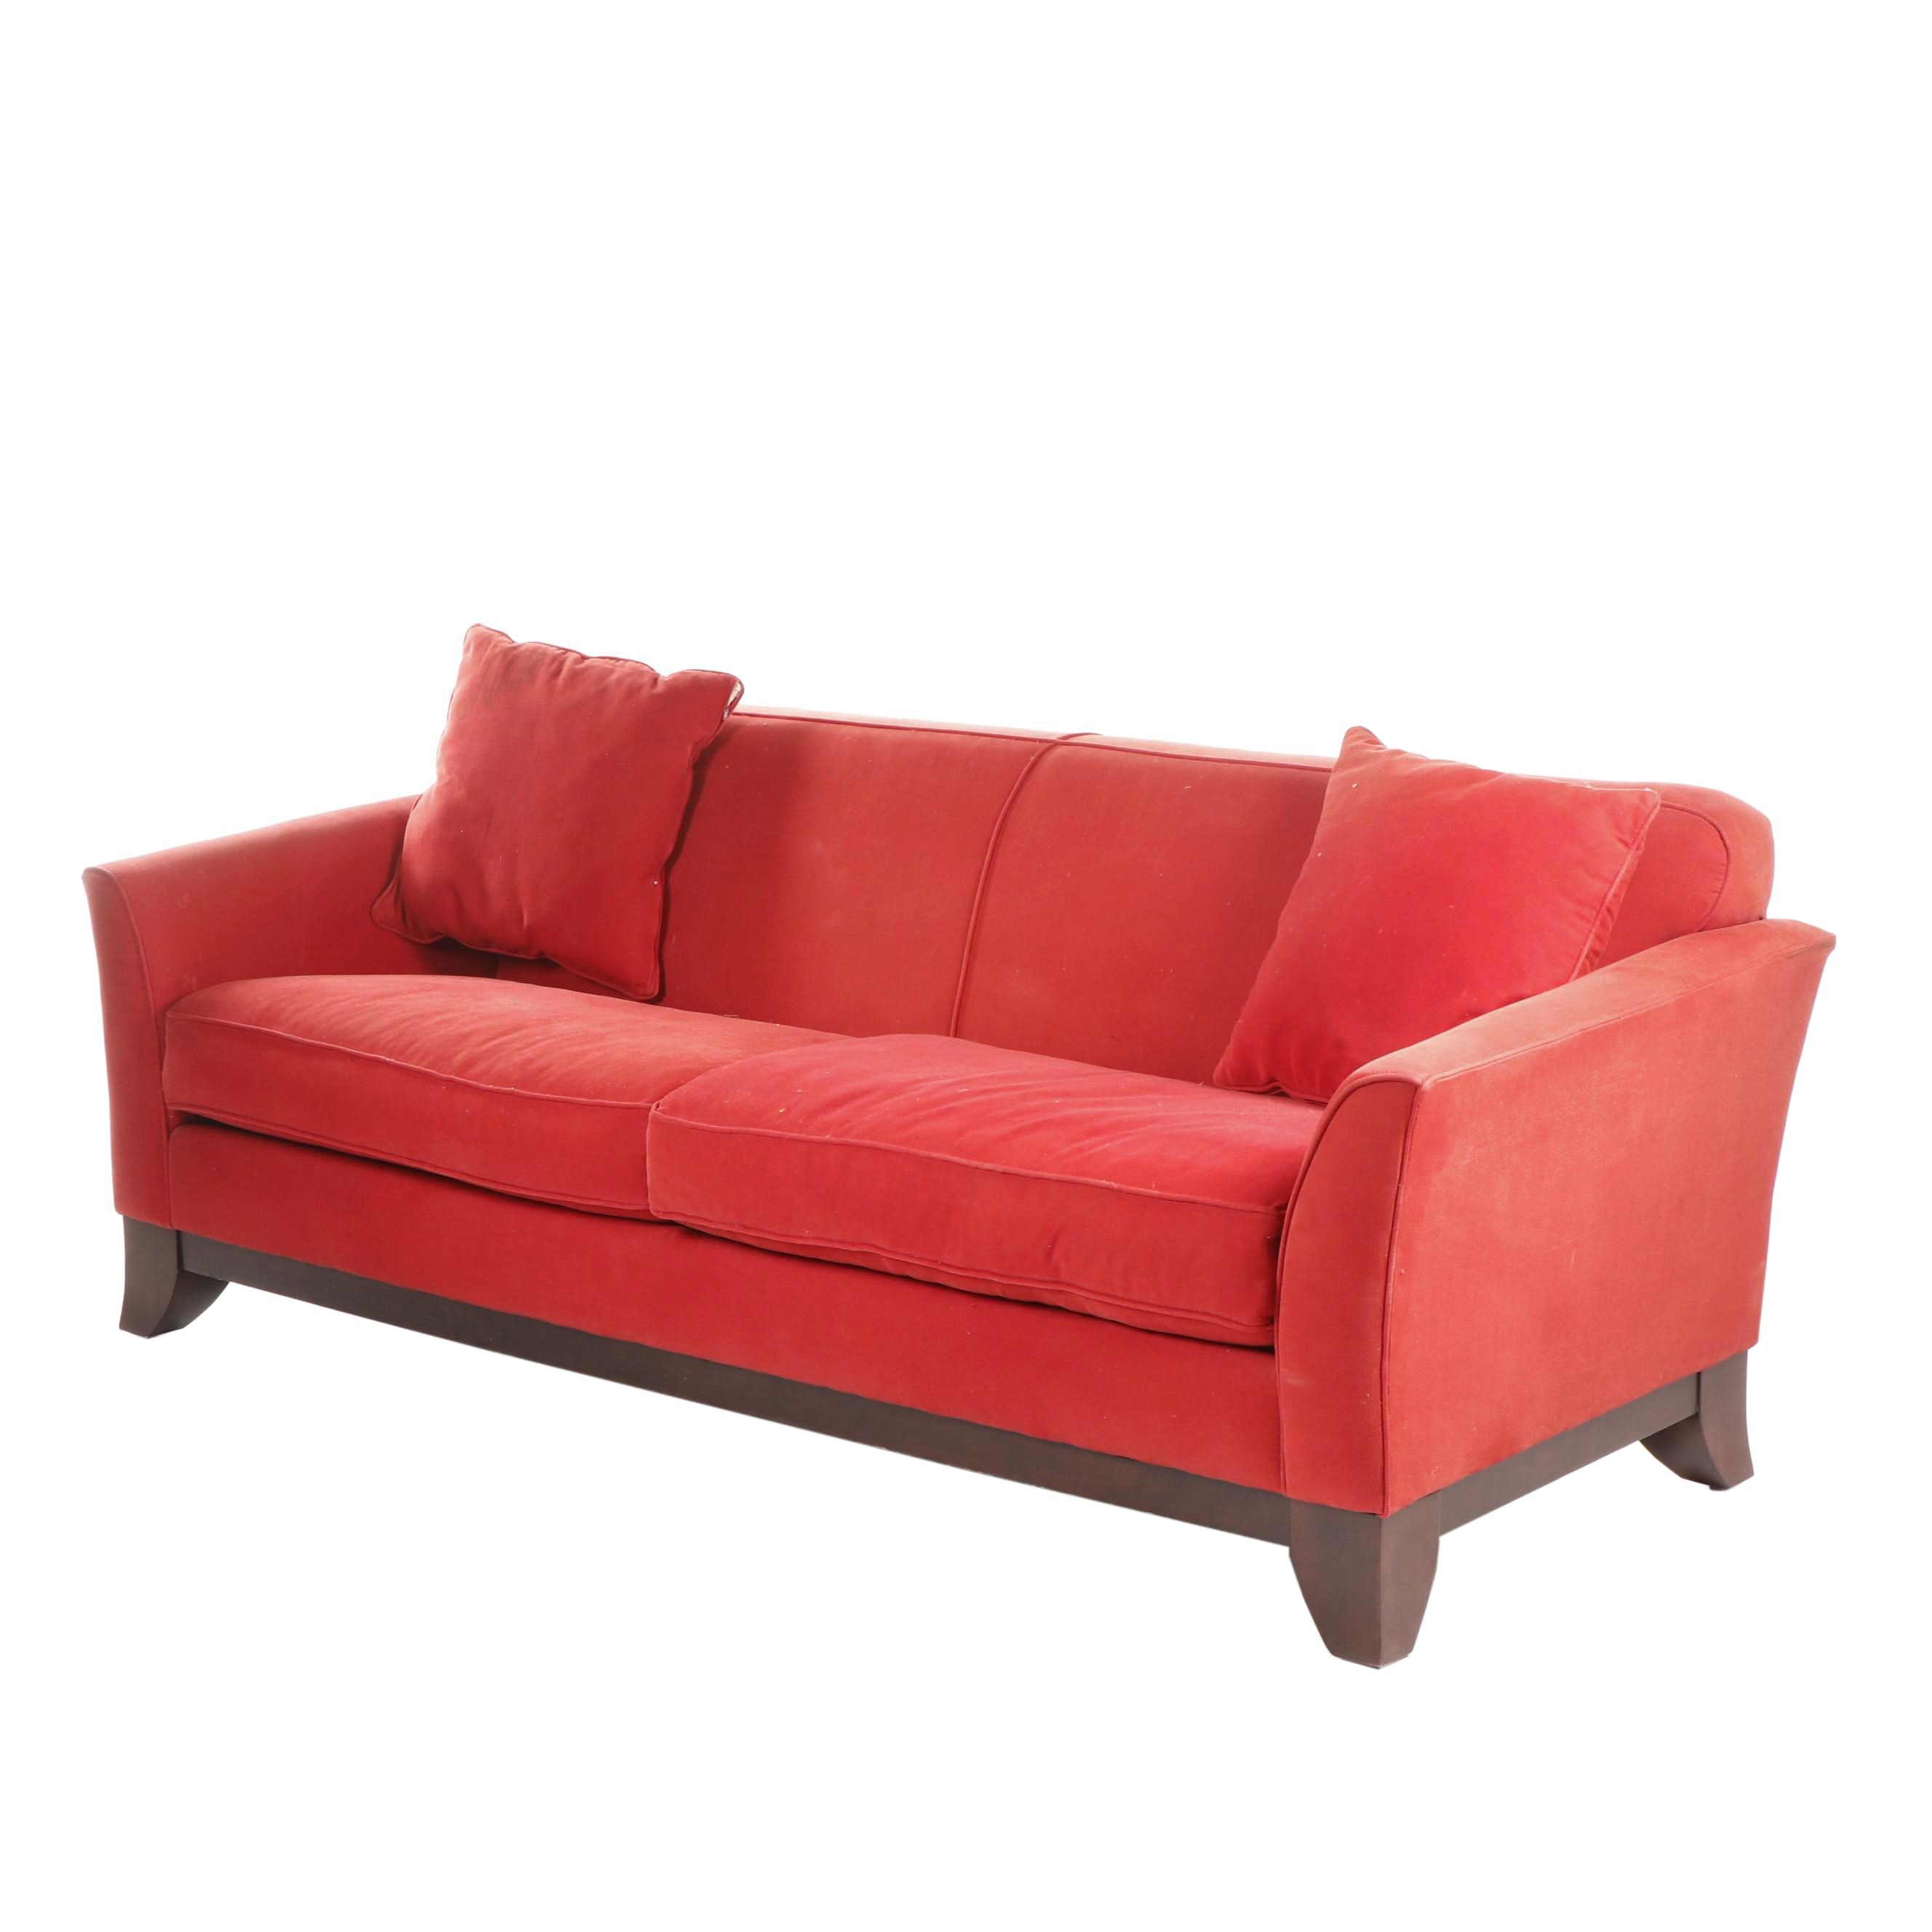 Pottery Barn Contemporary Modern Red Upholstered Sofa